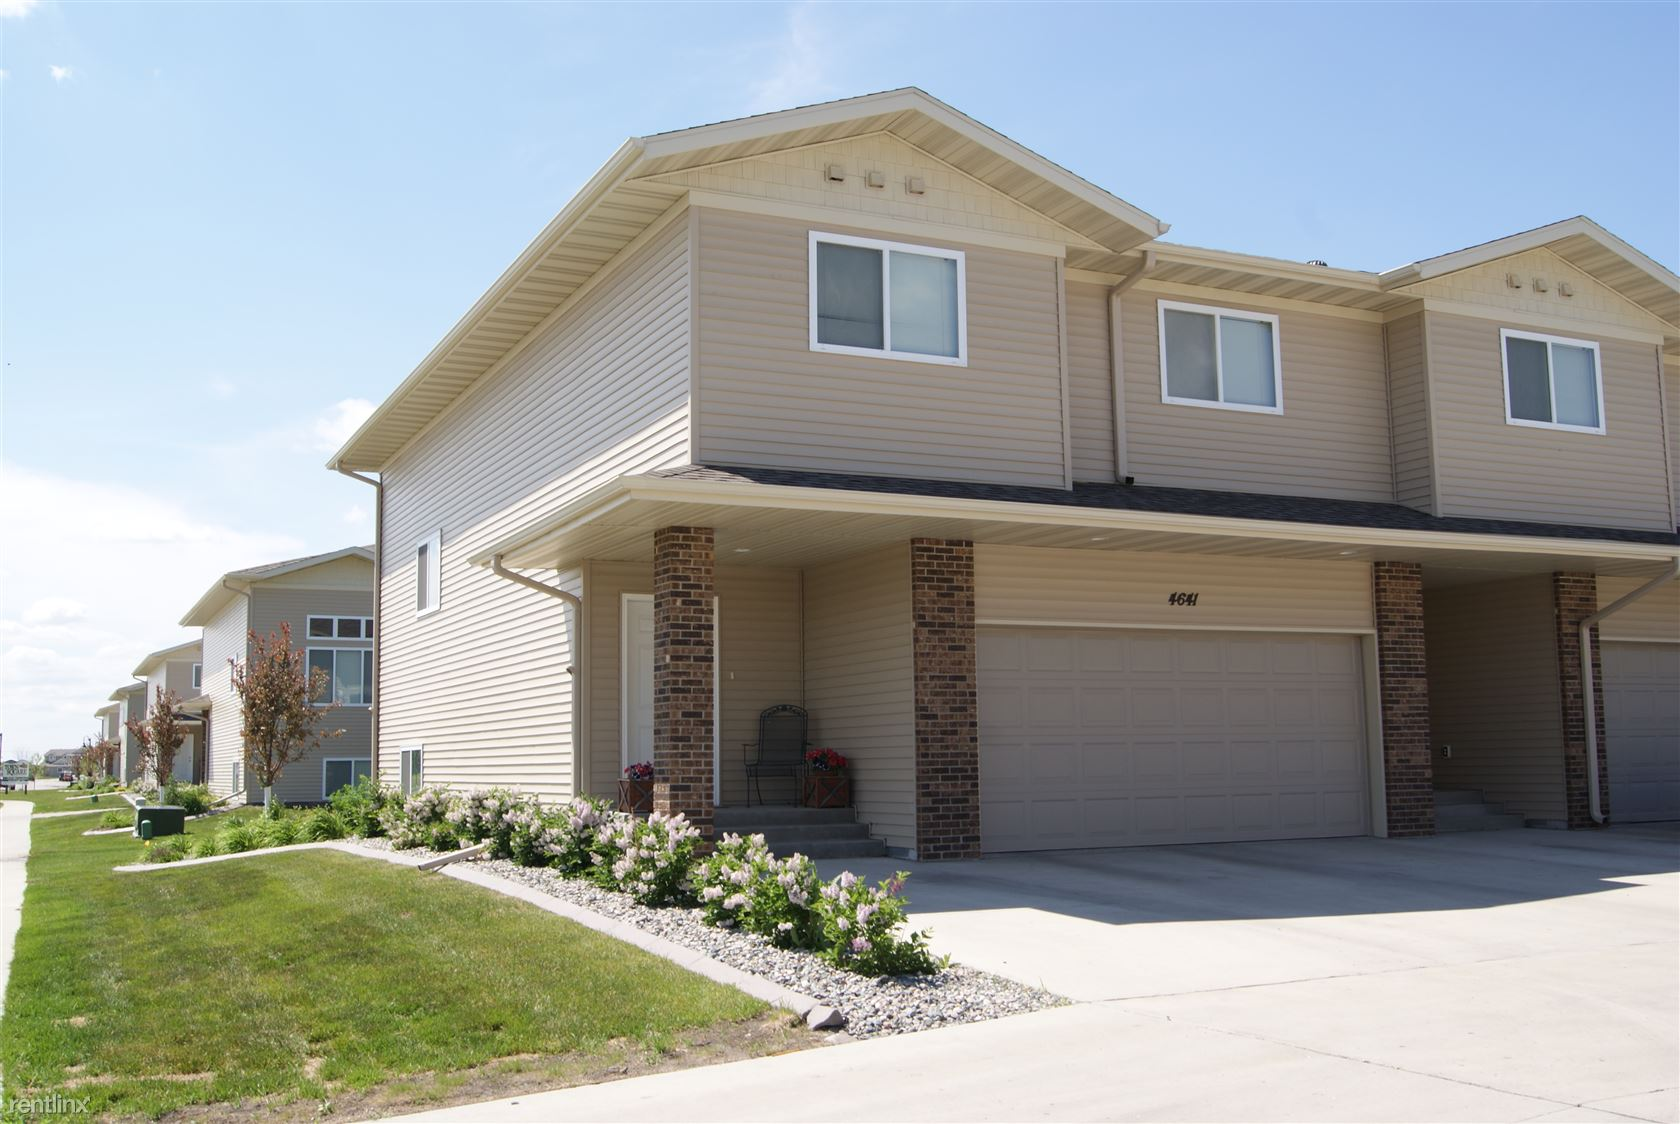 3408 7th St NE, Minot, ND - $1,595 USD/ month